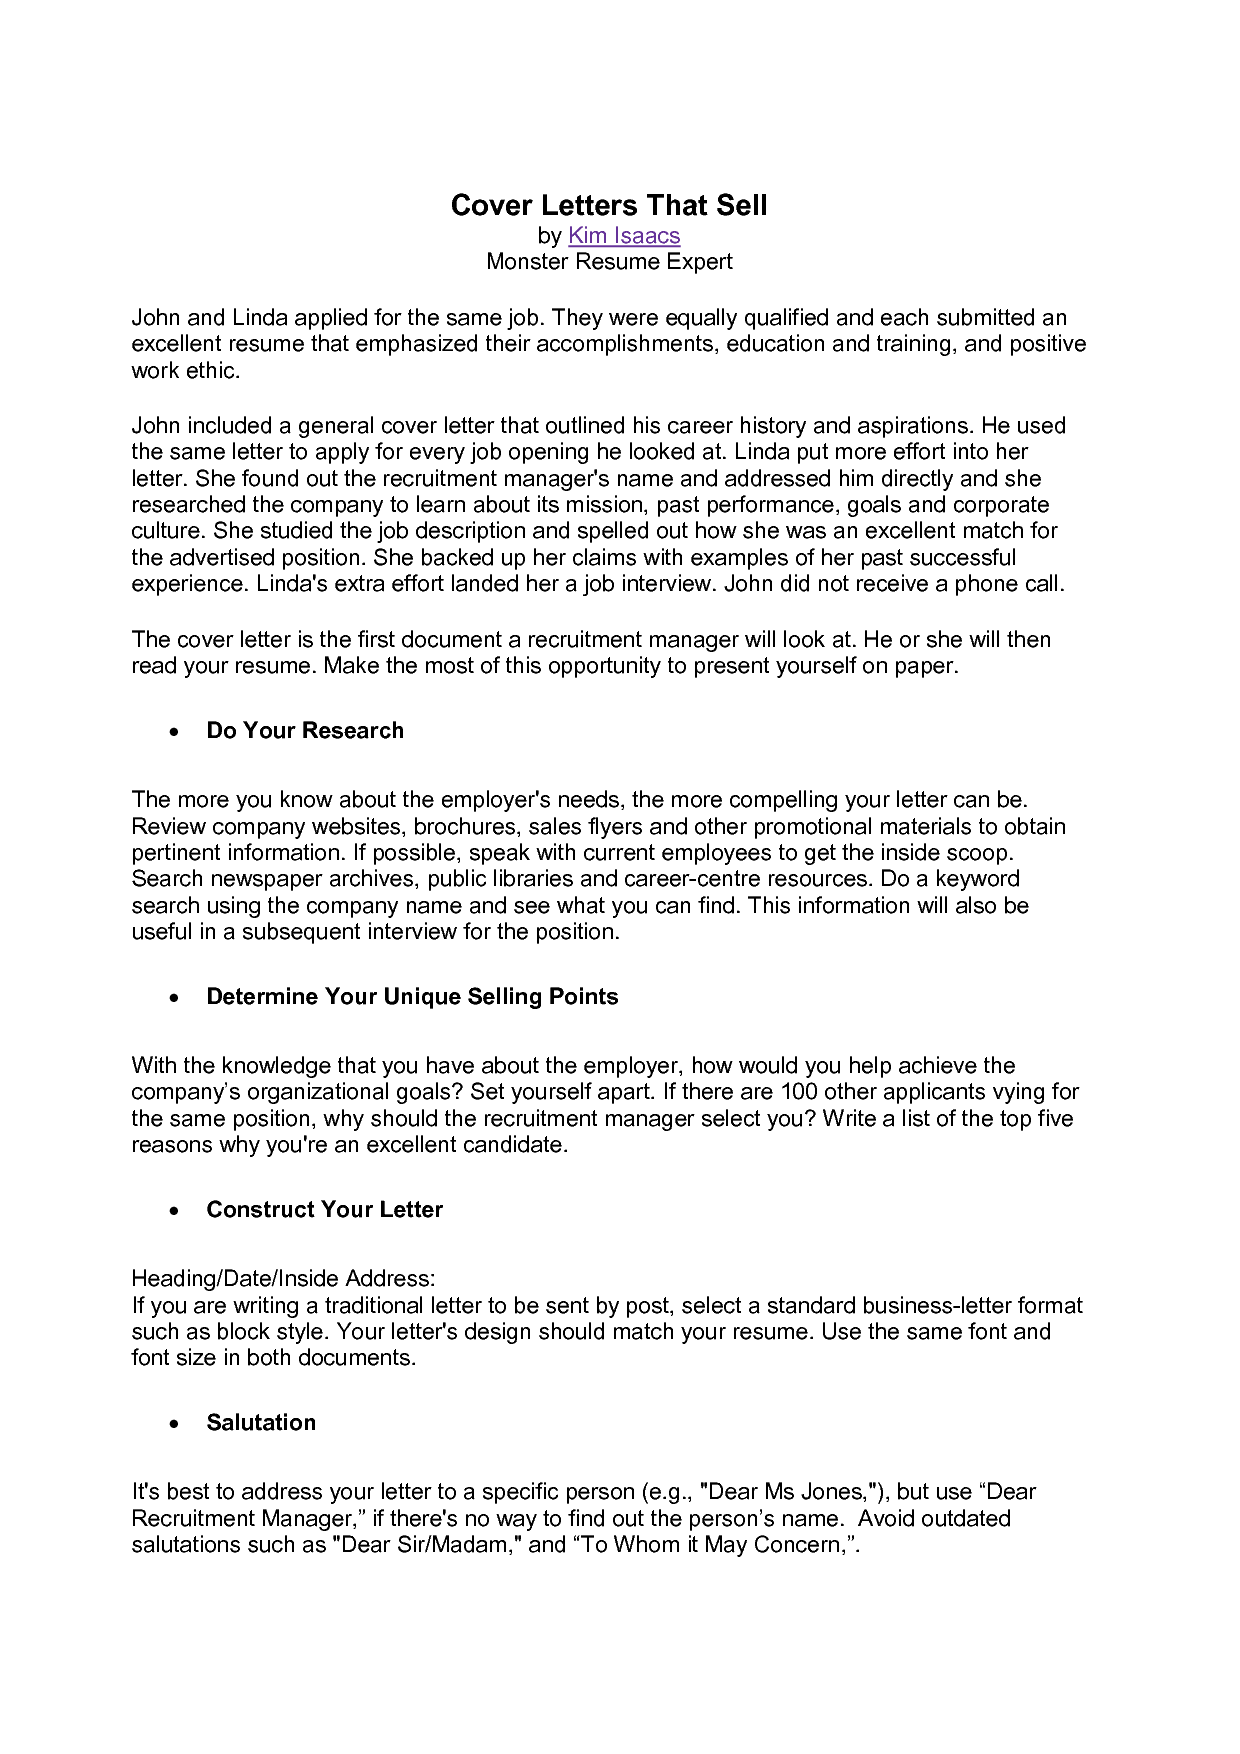 monster cover letter free download monster cover letter monster cover letter template monster cover letter examples monster cover letter tips - Cover Letter Examples Monster